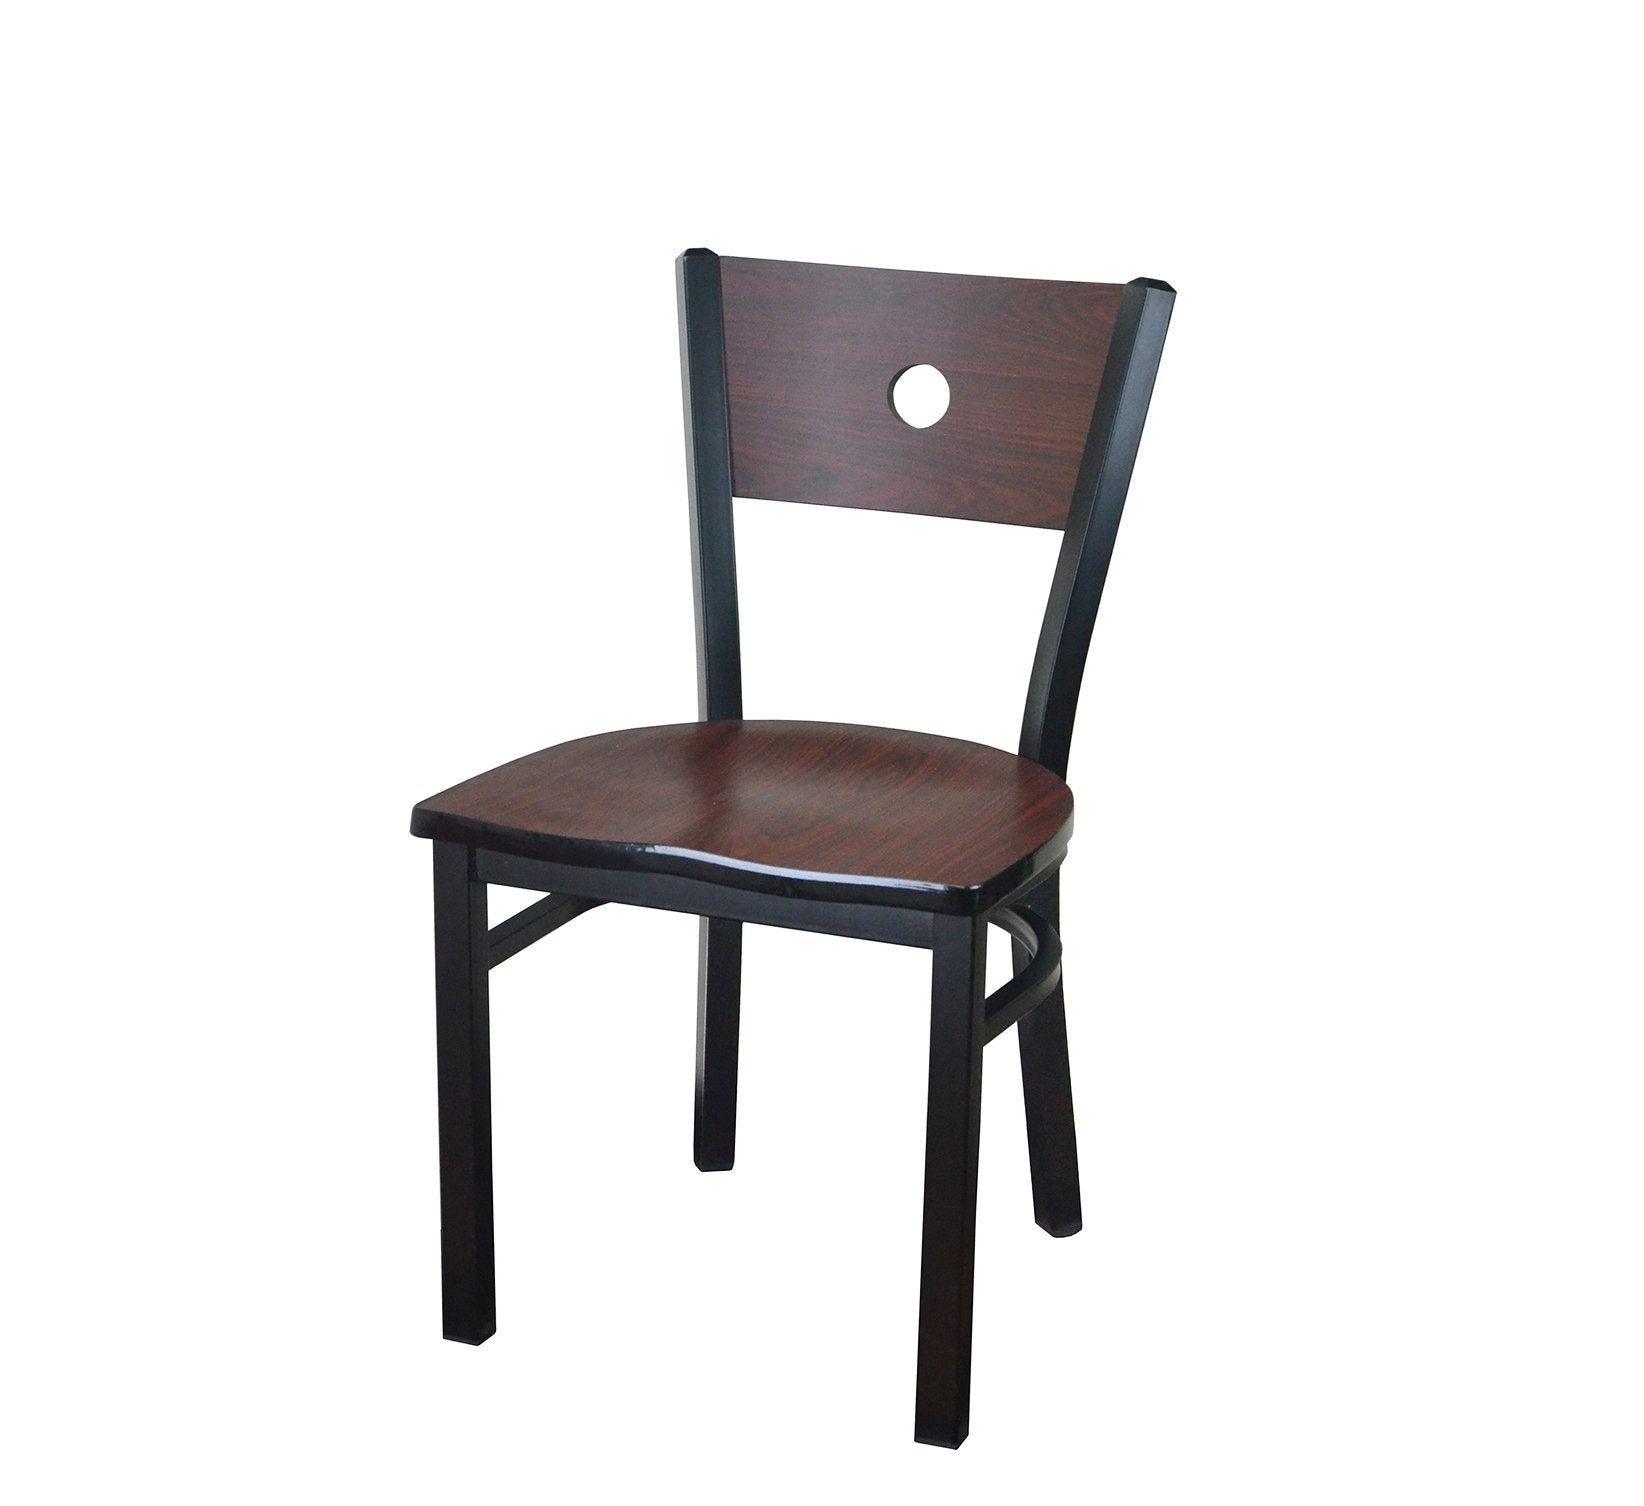 DHC 1449-D02 Matt Black Finish, Steel Dining Chair